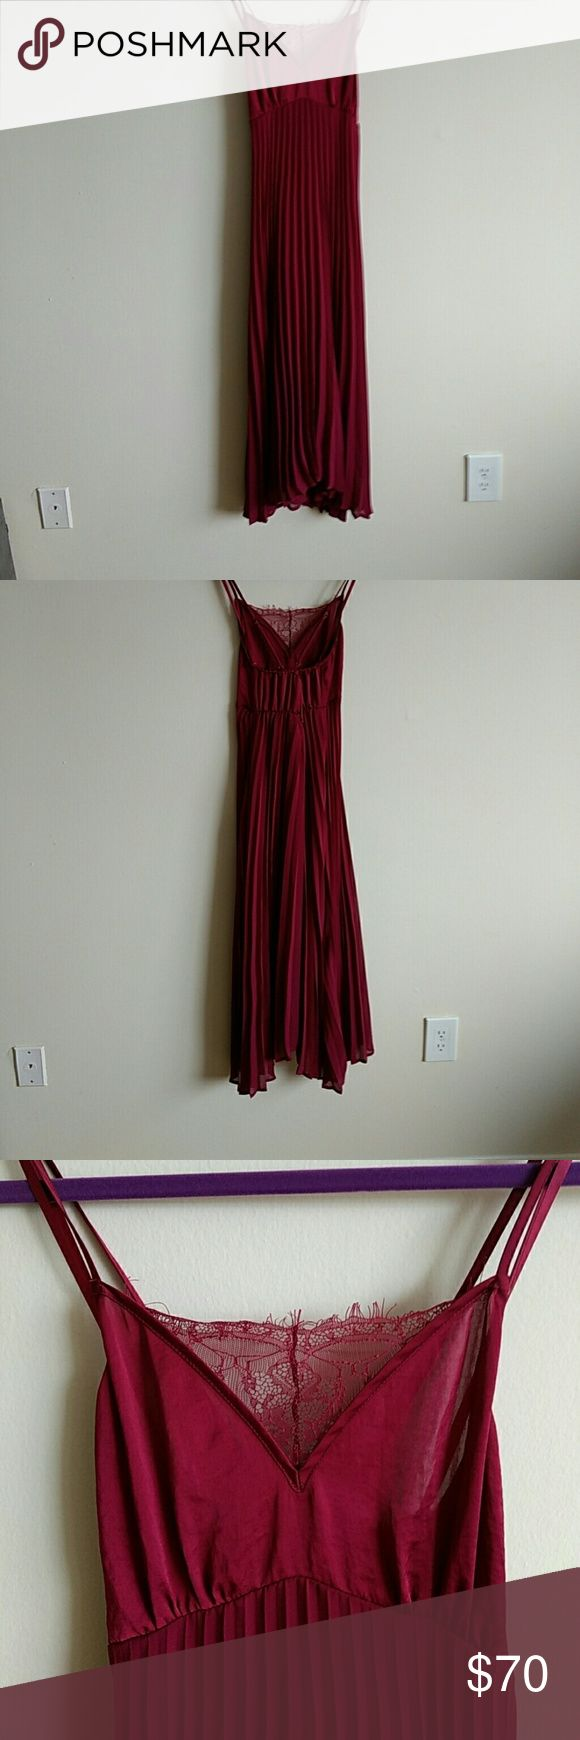 Small by Eloise Anthropology dress Only worn once to my graduation. In perfect condition. Anthropologie Dresses